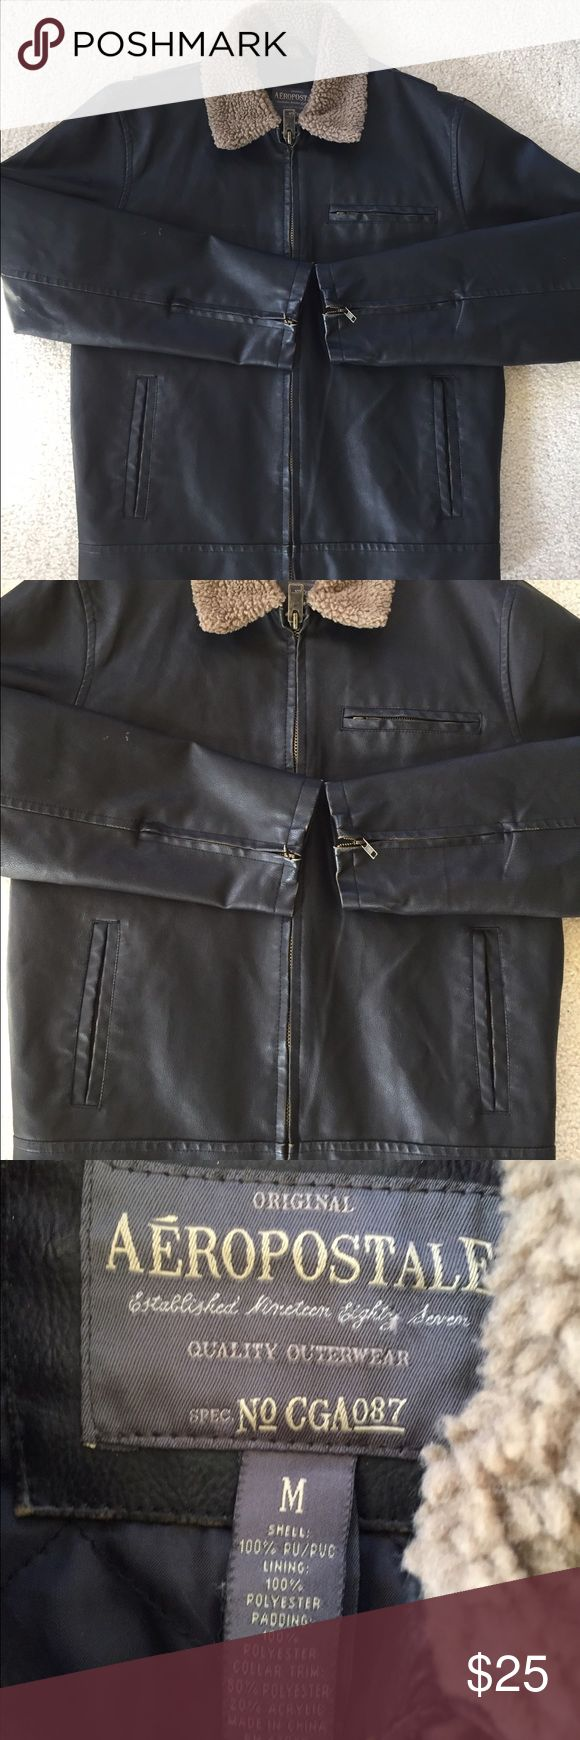 Aeropostale Black Faux Leather Jacket - Men's (M) Worn lightly. In nice condition! There is 1 patch of white/brown marking on the right sleeve of the jacket (shown in the last picture). I don't know whether this is part of the design or not but nonetheless it is hardly noticeable. Aeropostale Jackets & Coats Performance Jackets